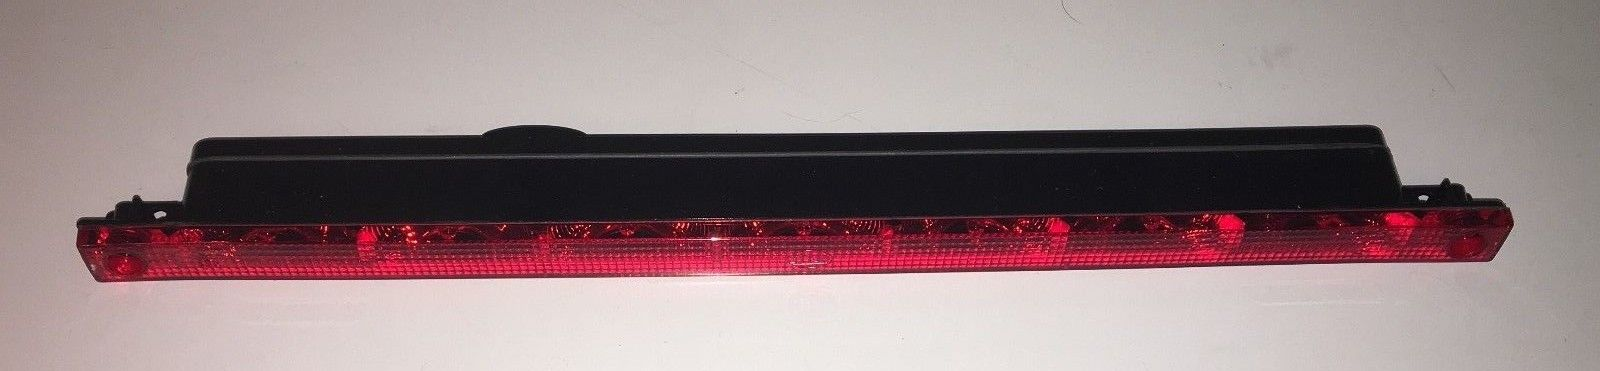 Hella High Mounted Stop / Brake Light- 12V - K56 - 0735 - Caratech Caravan Parts